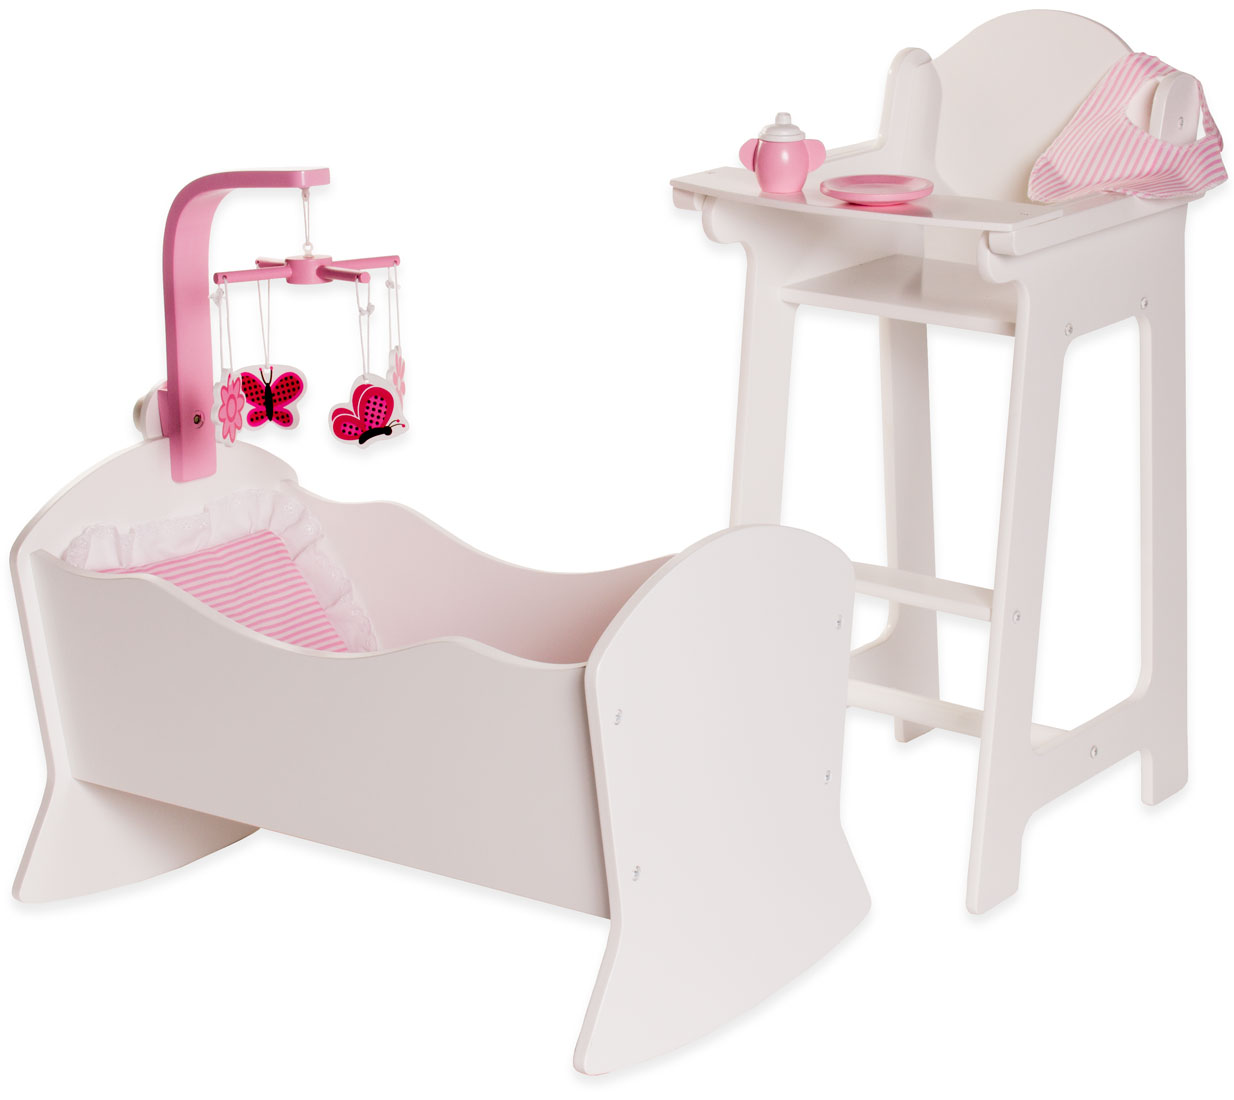 Eimmie 18 Inch Doll Furniture High Chair and Cradle Set with Accessories by